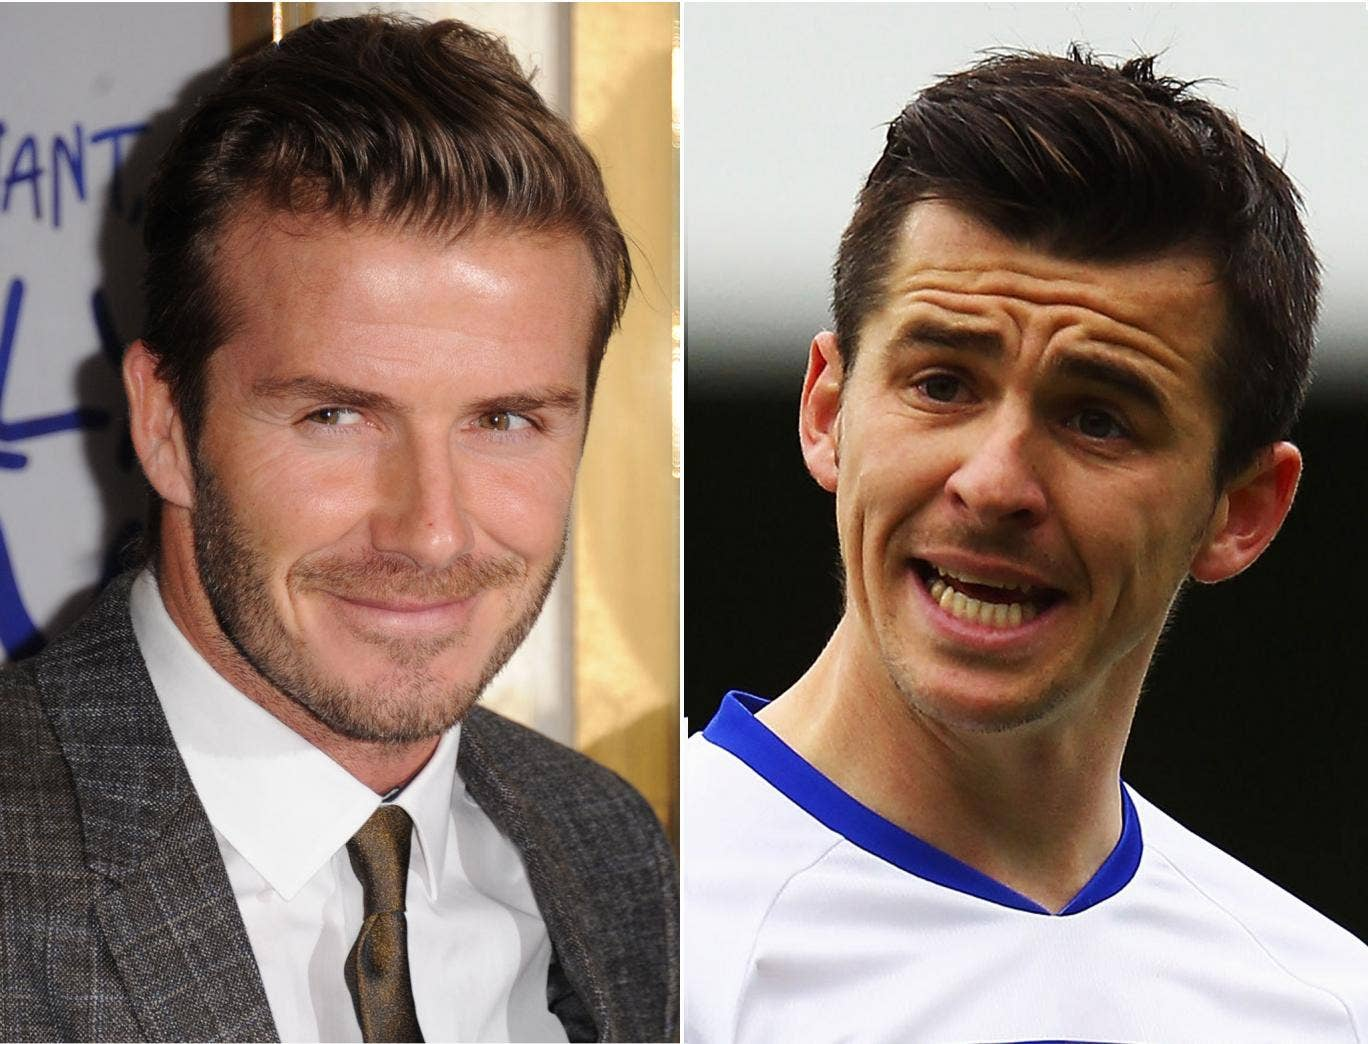 David Beckham (left) might make his Paris St Germain debut against a Marseille side including fellow Englishman Joey Barton (right)